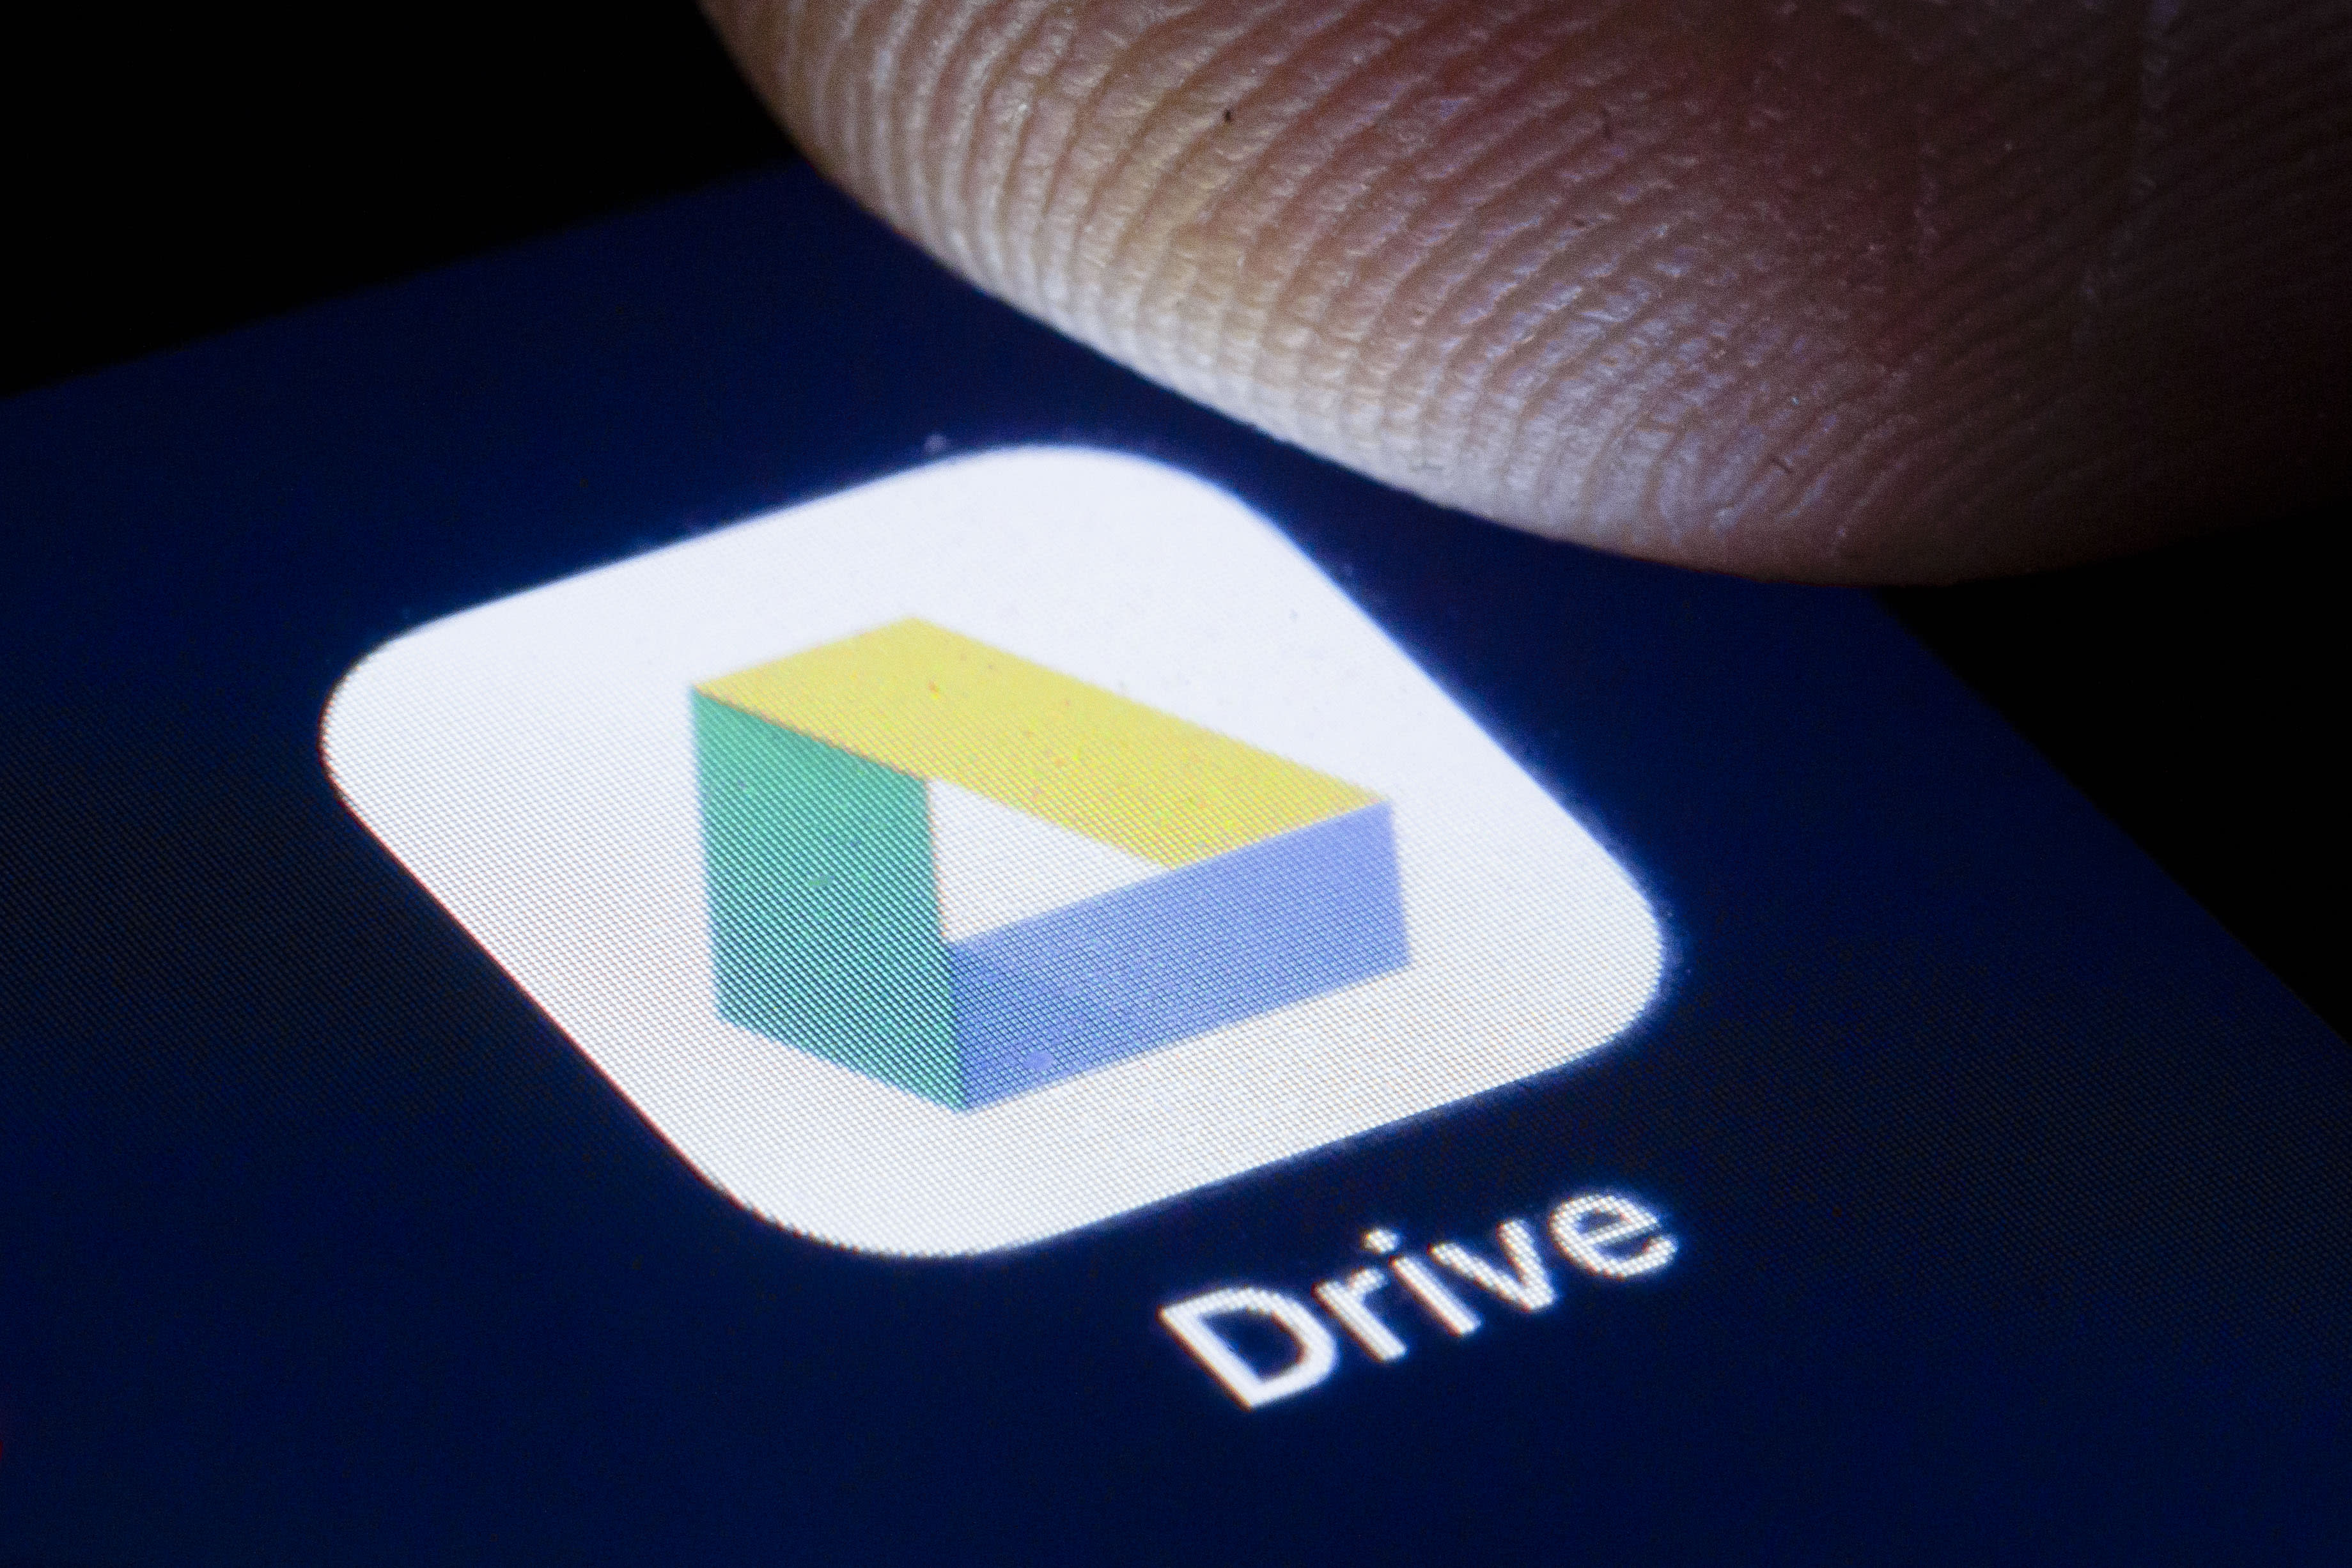 Google Drive will start automatically deleting Trash files after 30 days | Engadget